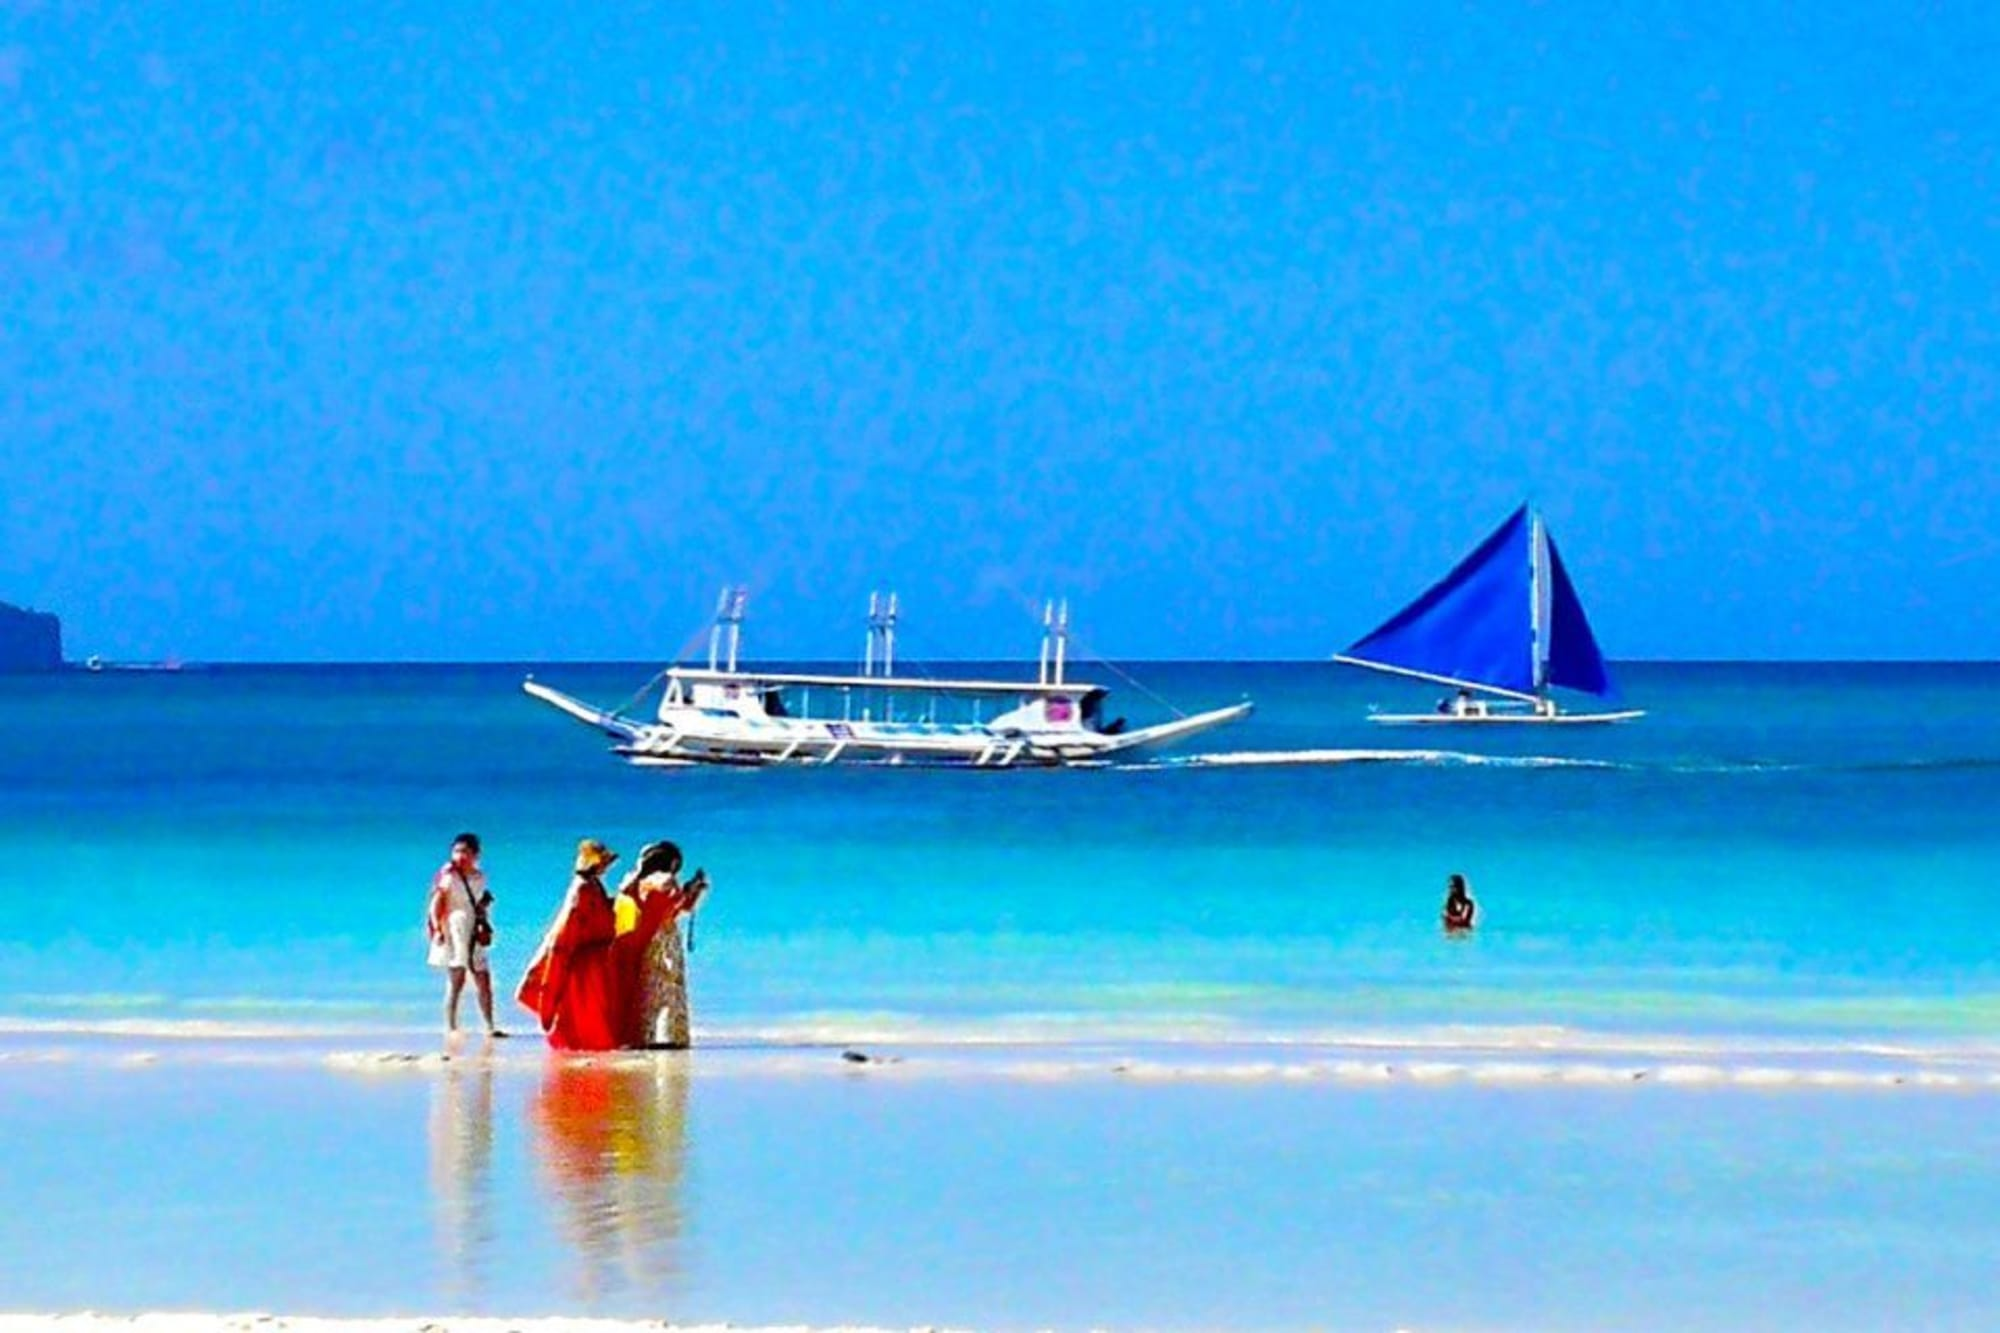 Chinese top foreign visitors to Boracay